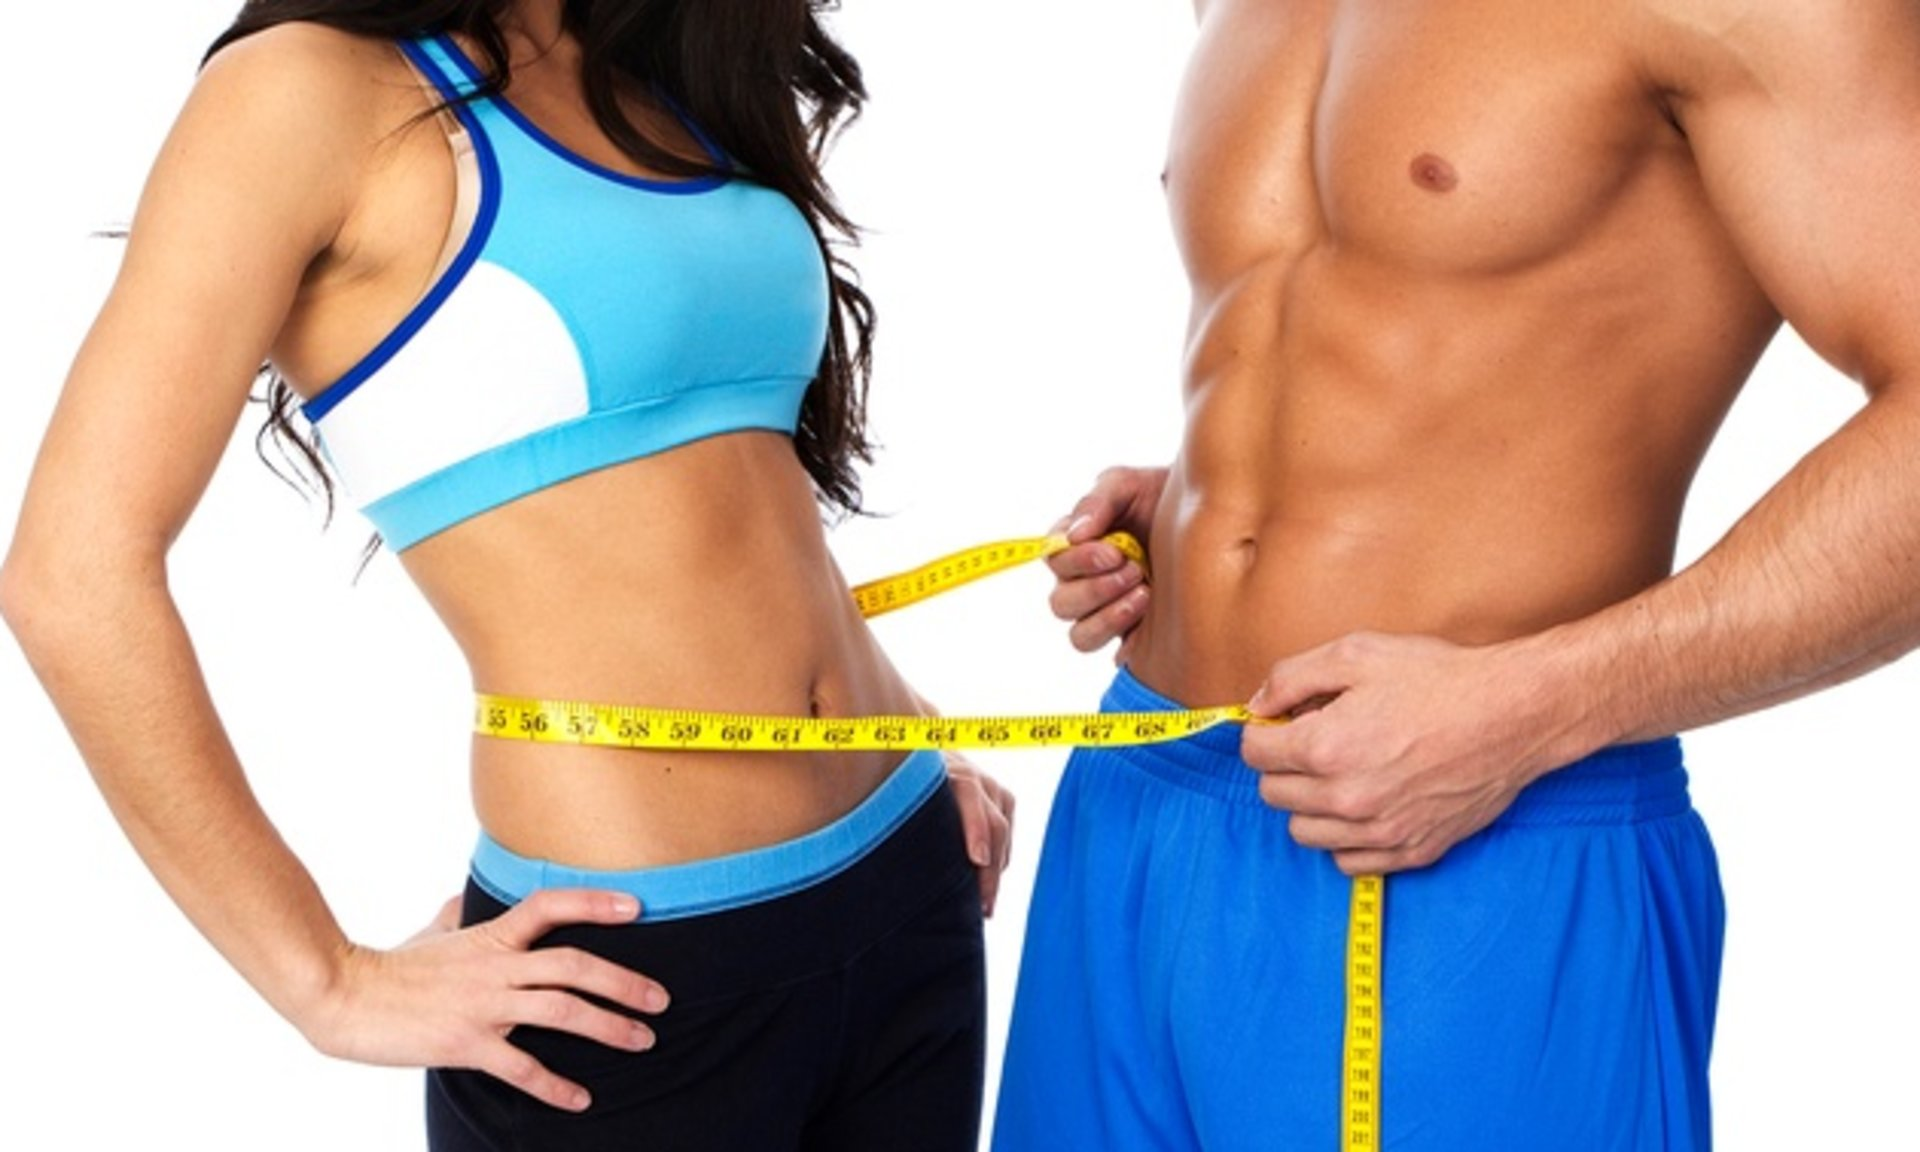 Do The Weight Loss Or Diet Pills Effectively Help In Losing Weight? | Steve Rogers